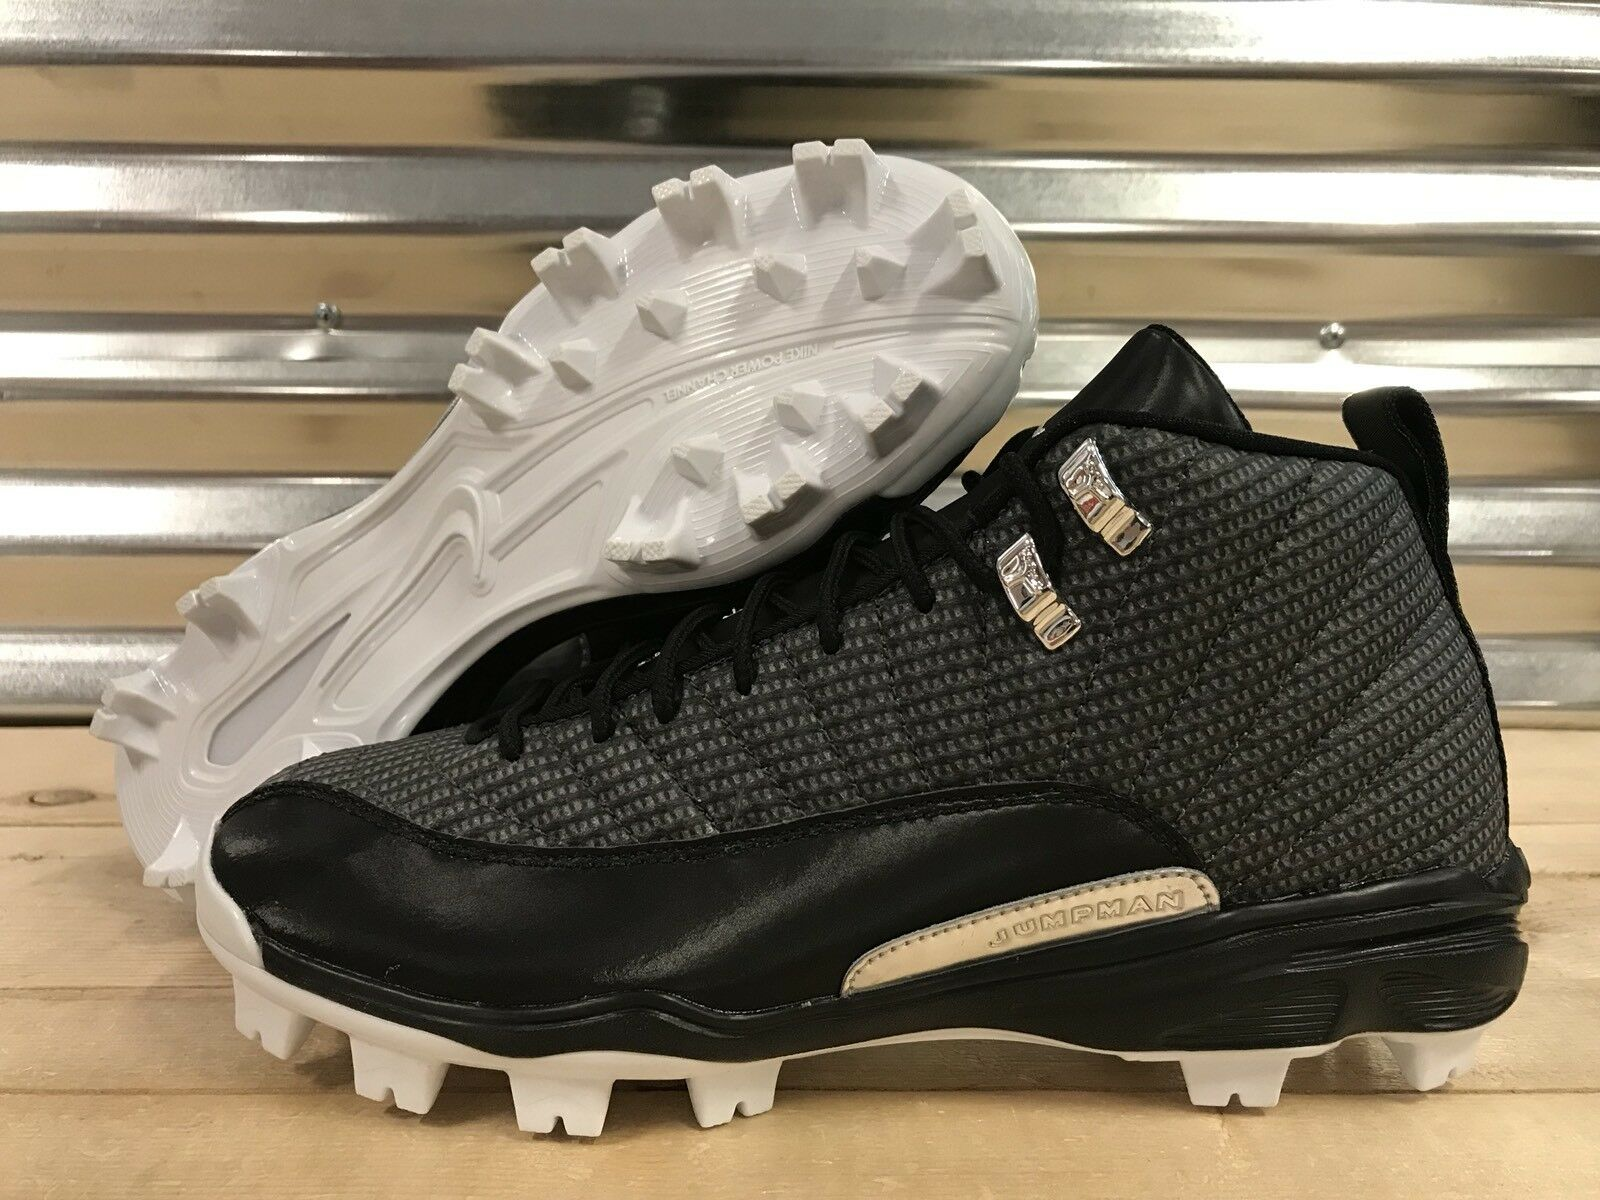 Nike Air Jordan 12 XII Retro MCS Baseball Cleats Black Gray Price reduction Special limited time